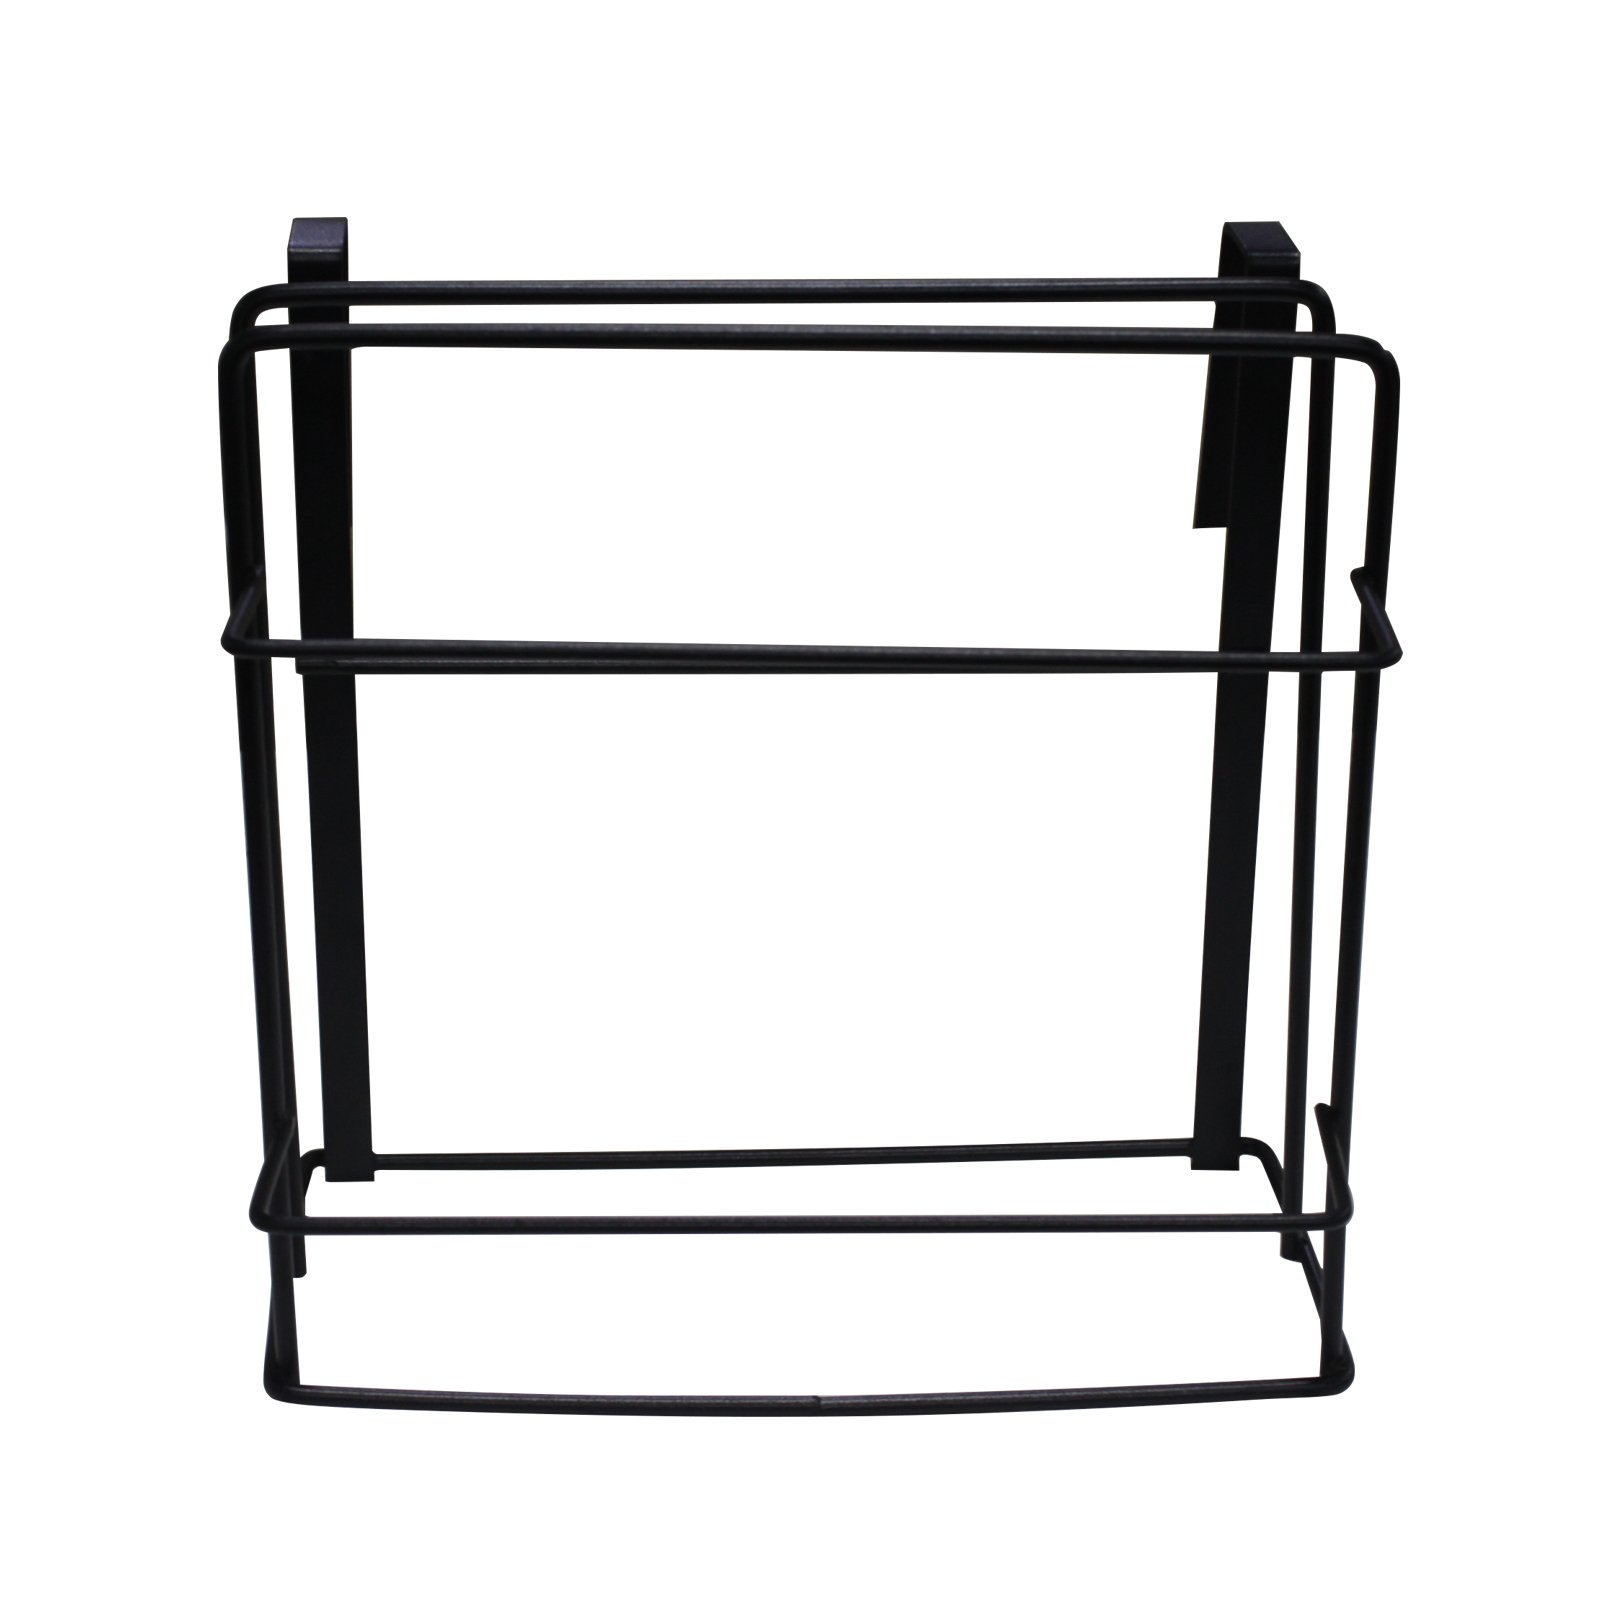 Chopping Board Holder Under Cabinet Shelf Organizer Towel Rack Multifunctional Kitchen Cookware Organizer Storage Rack Hanging Kitchen Storage Holder (Black-1pack) by Kitchen Hardware Collection (Image #3)